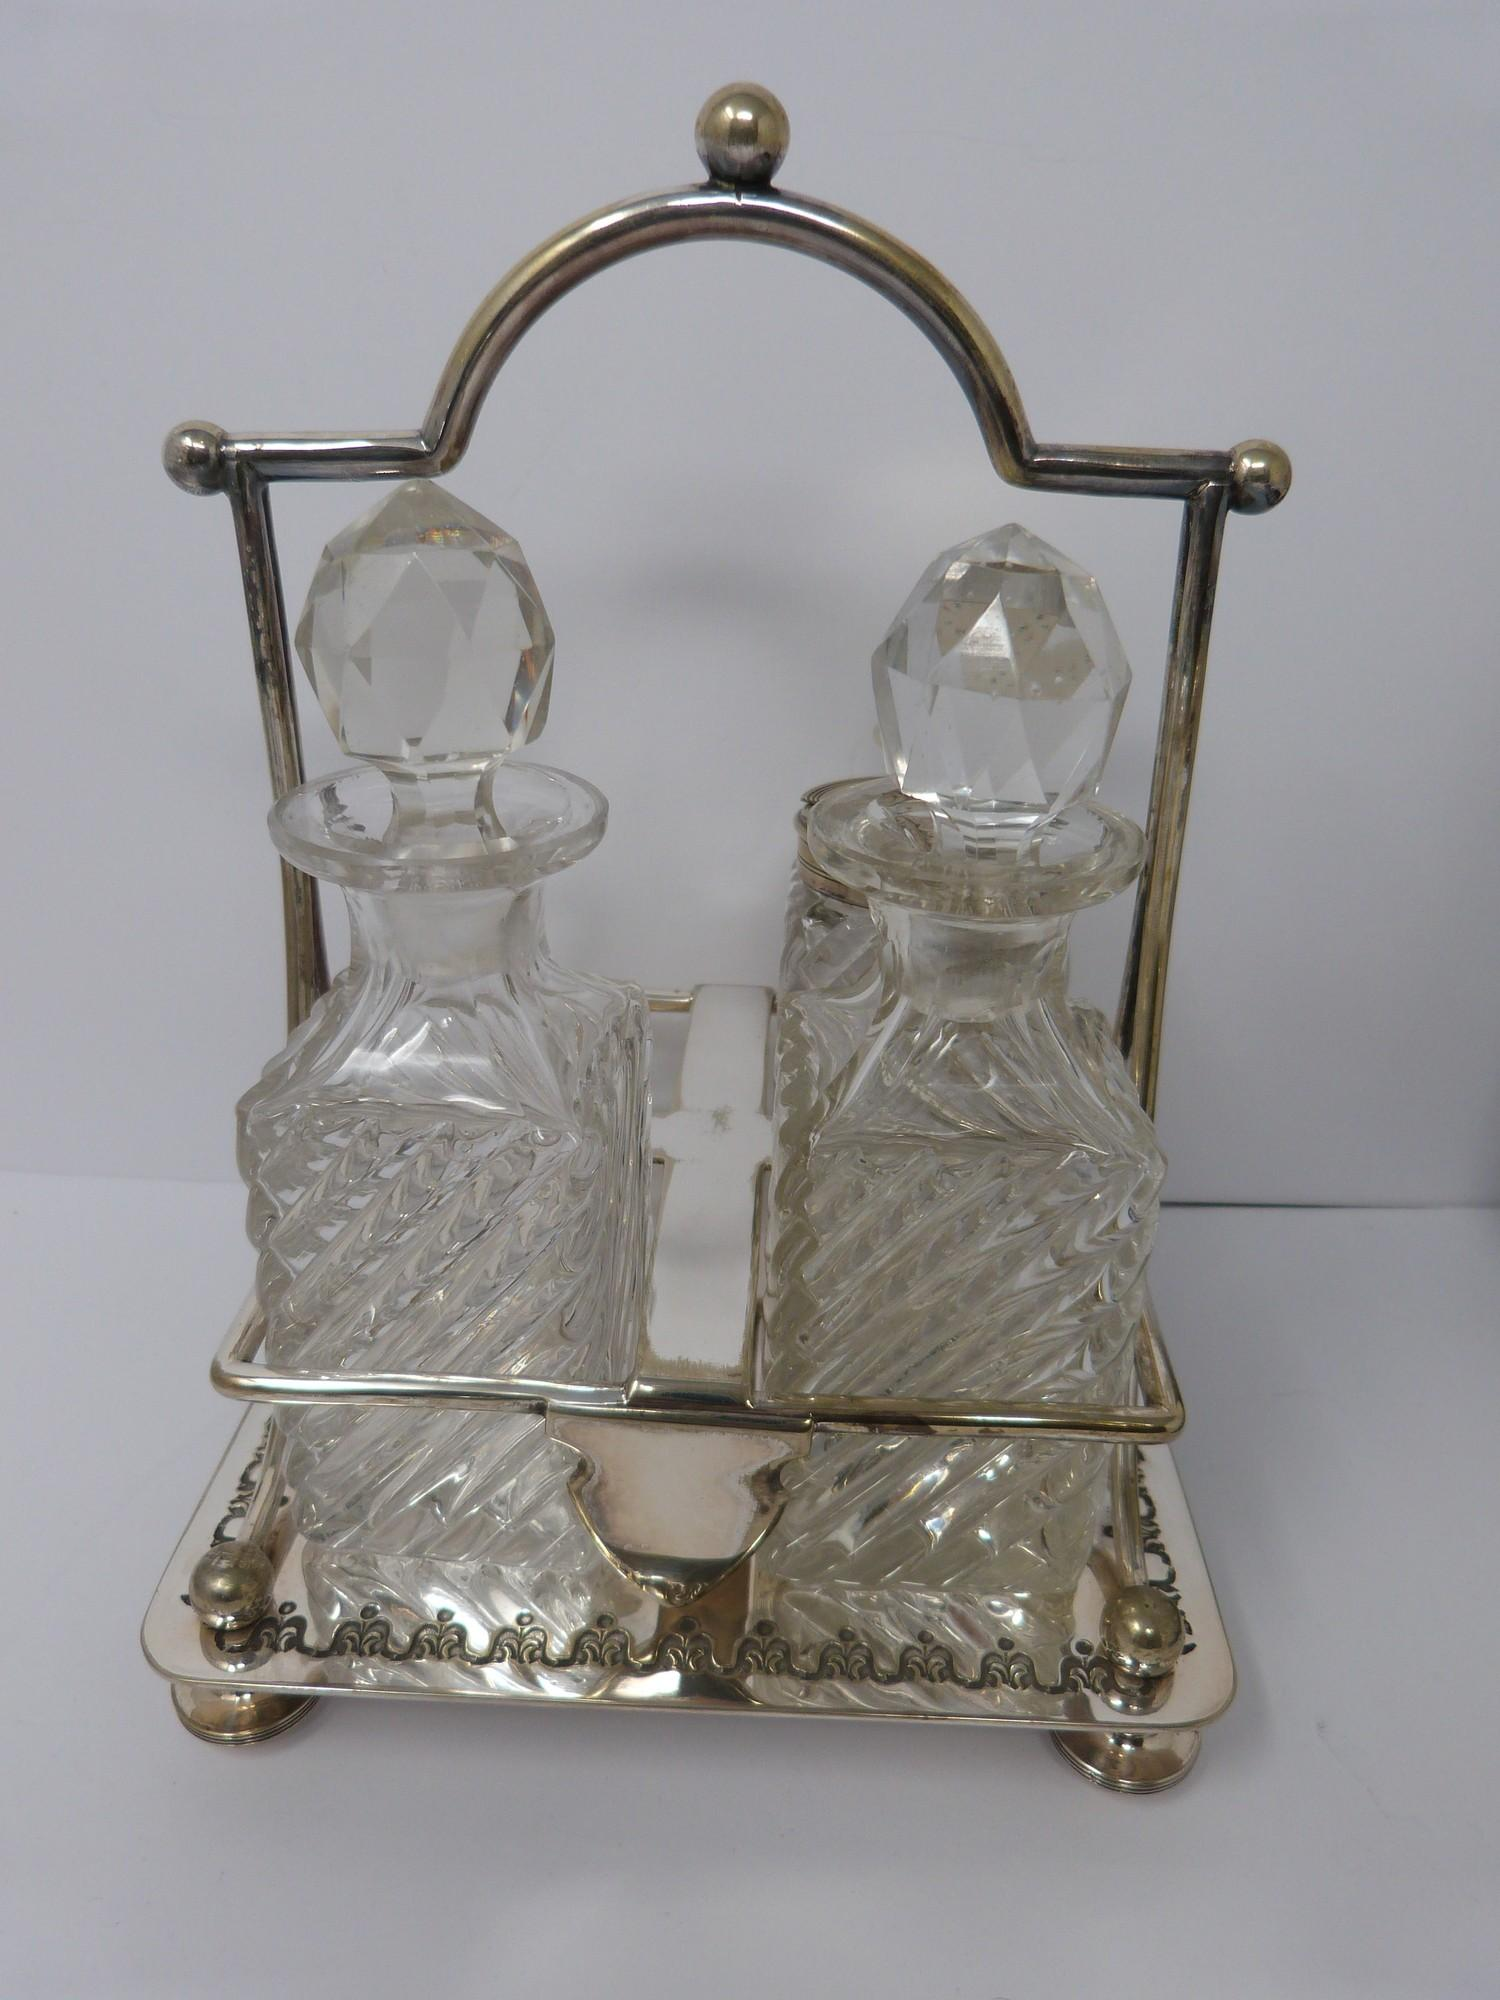 Collection of silver plate including, cruet, cut glass buiscuit barrel, cased butter and cut glass - Image 3 of 7